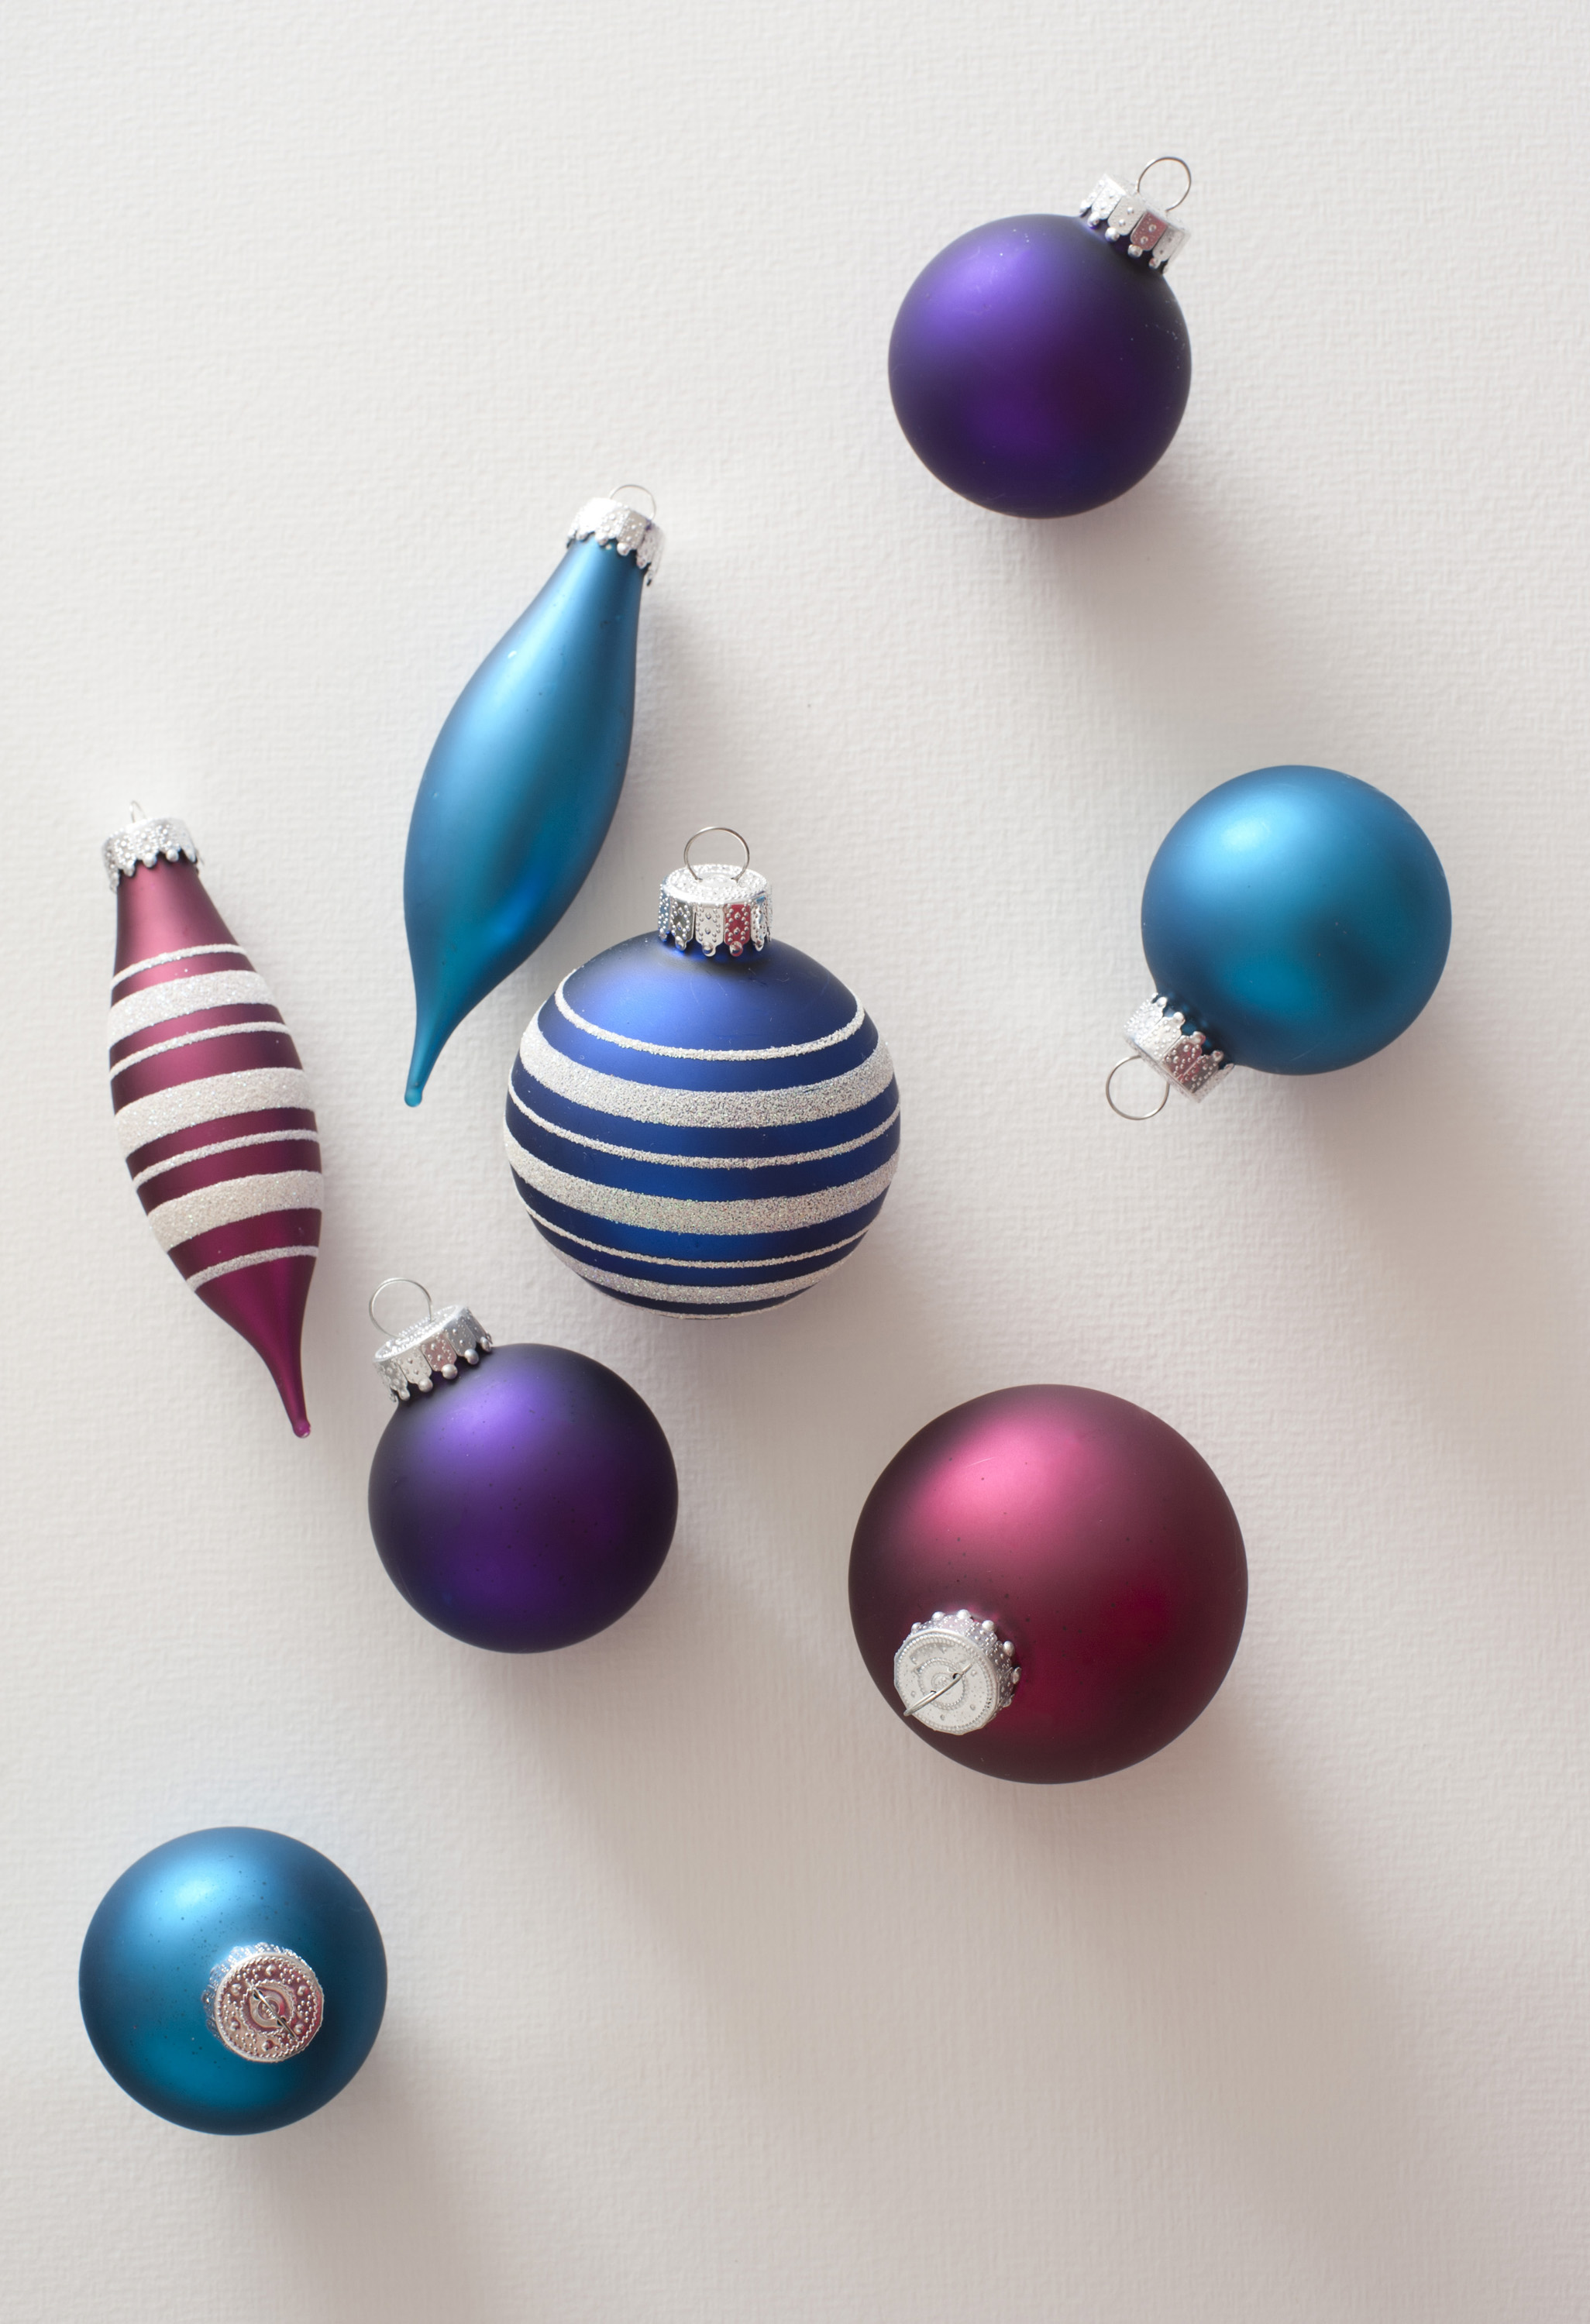 Eight festive glass bauble tree decoration. From above